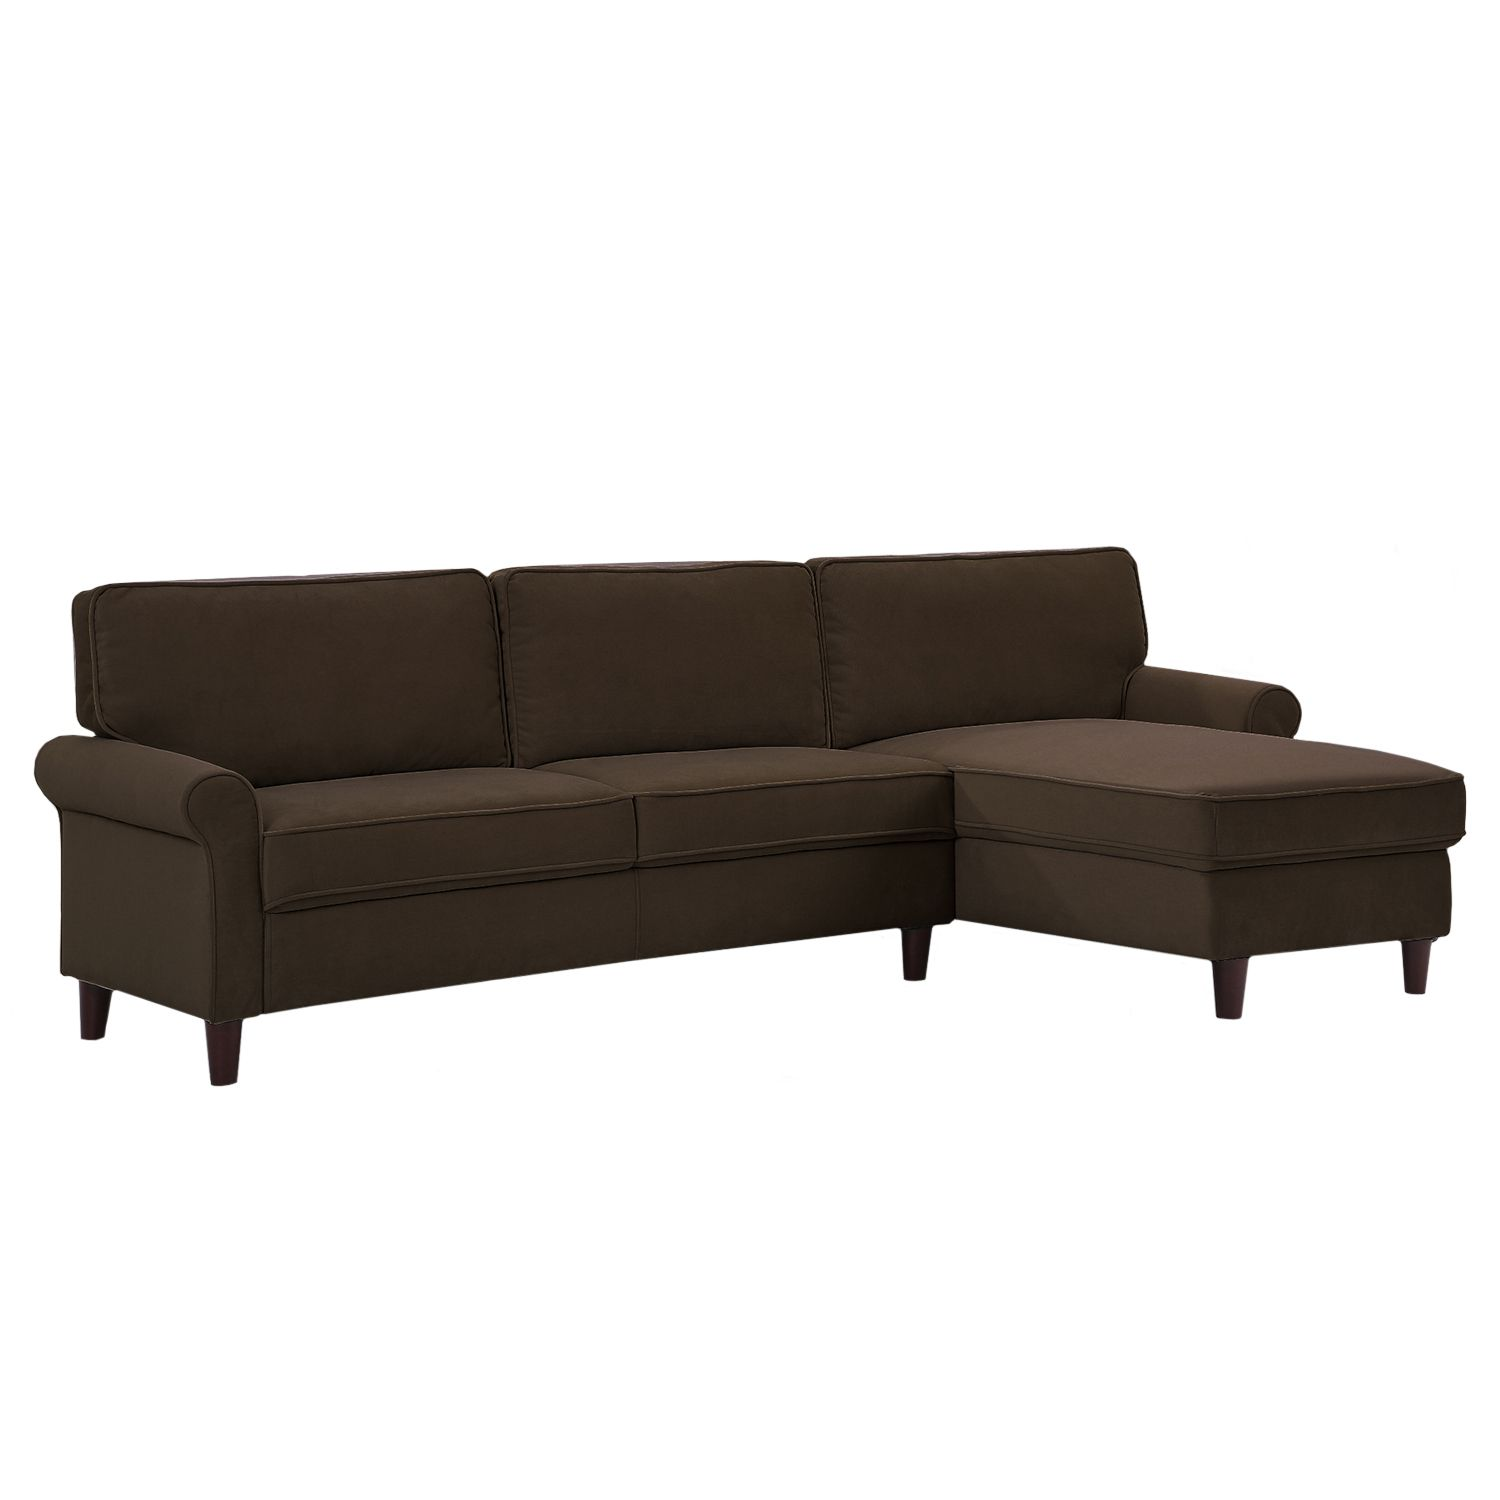 Cooper Sectional Sofa  sc 1 st  Kohlu0027s : sectional sofa images - Sectionals, Sofas & Couches